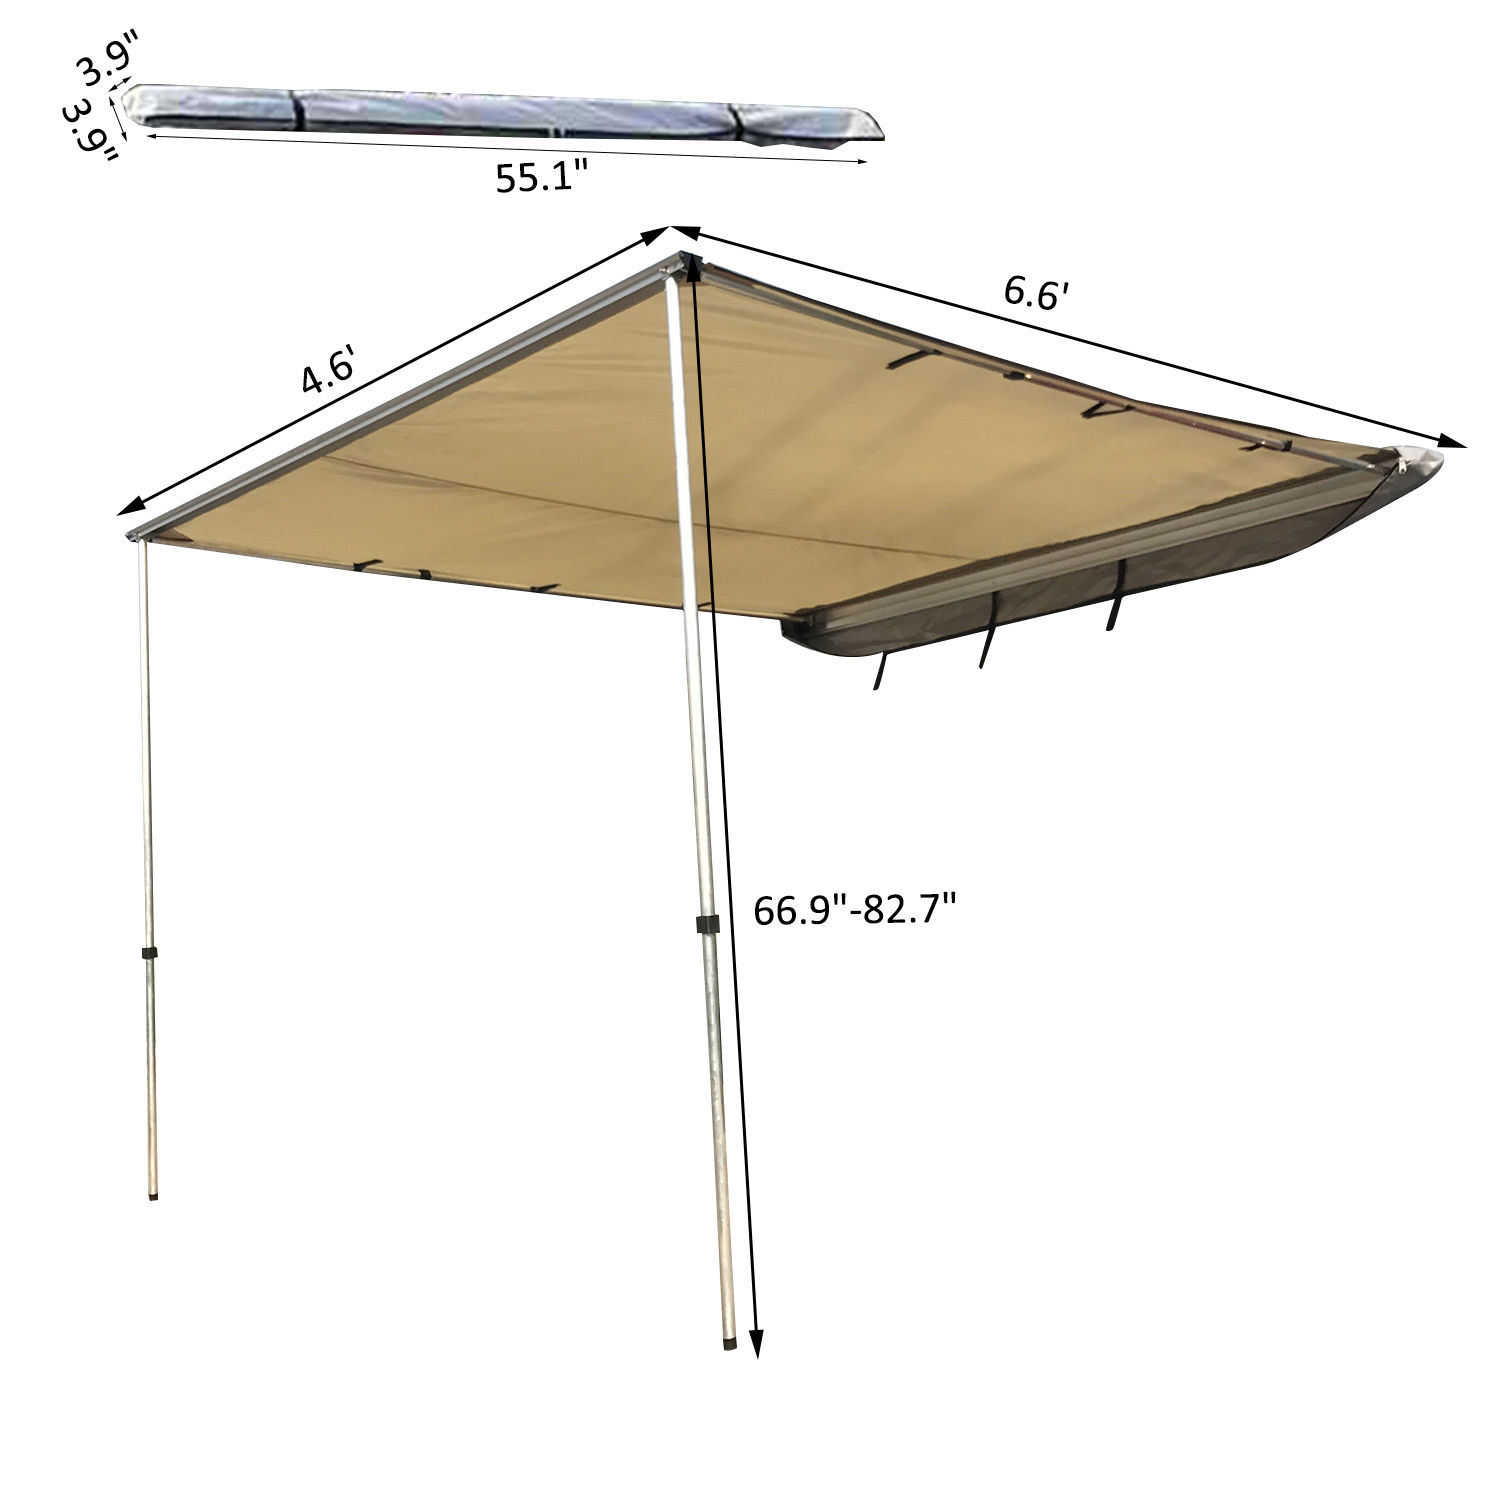 SUV Car Roof Top Tent Shelter Truck Camping Family Travel Awning